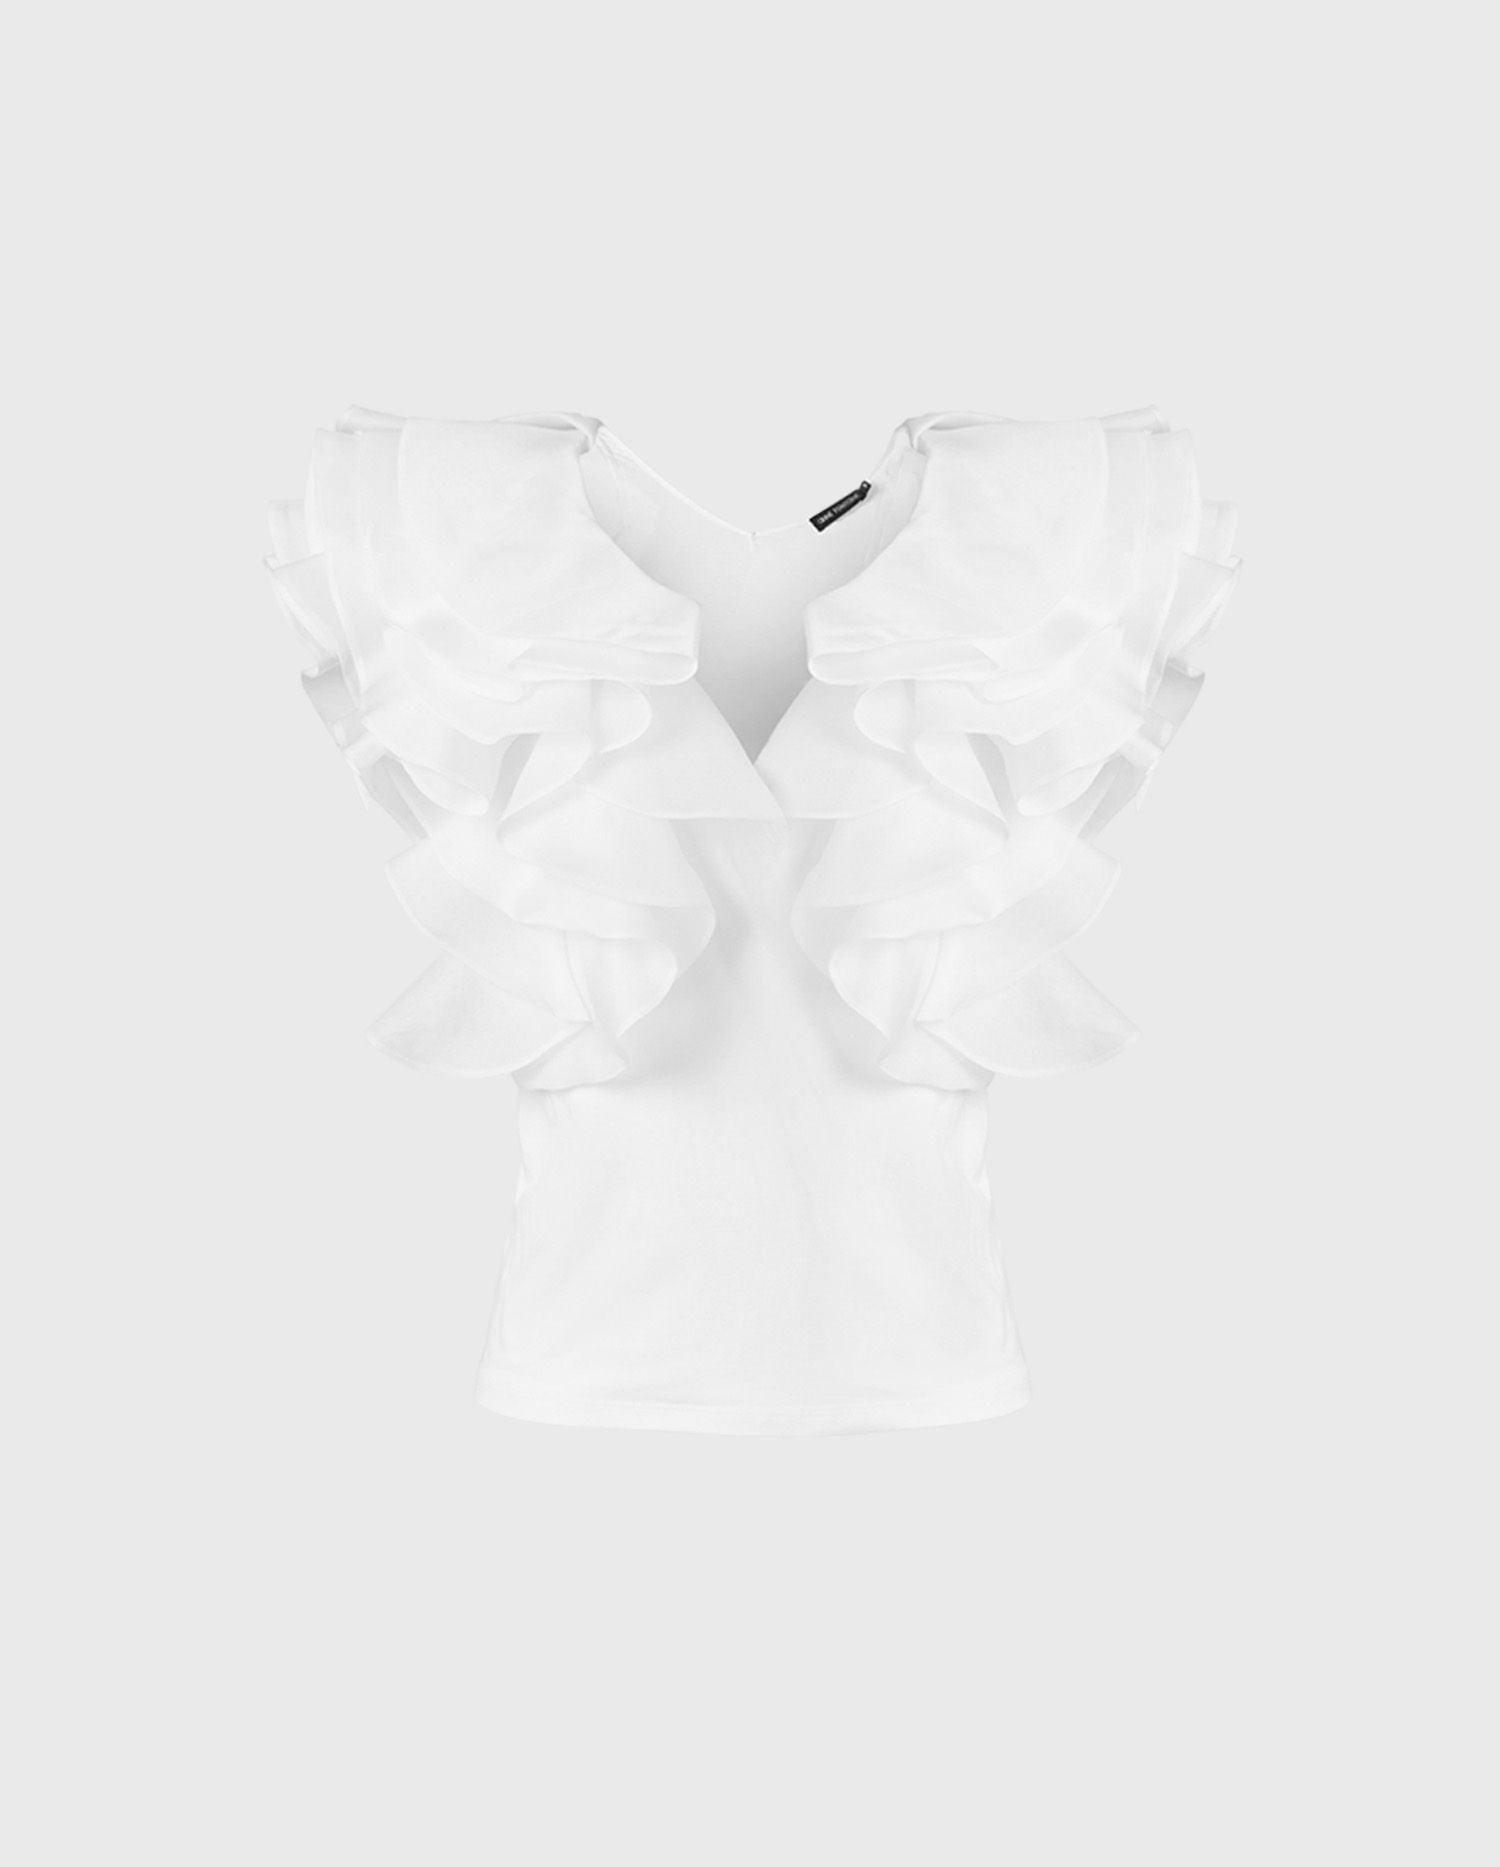 The NATALENA statement white ruffle sleeve top is the perfect style to add to your Parisian chic wardrobe